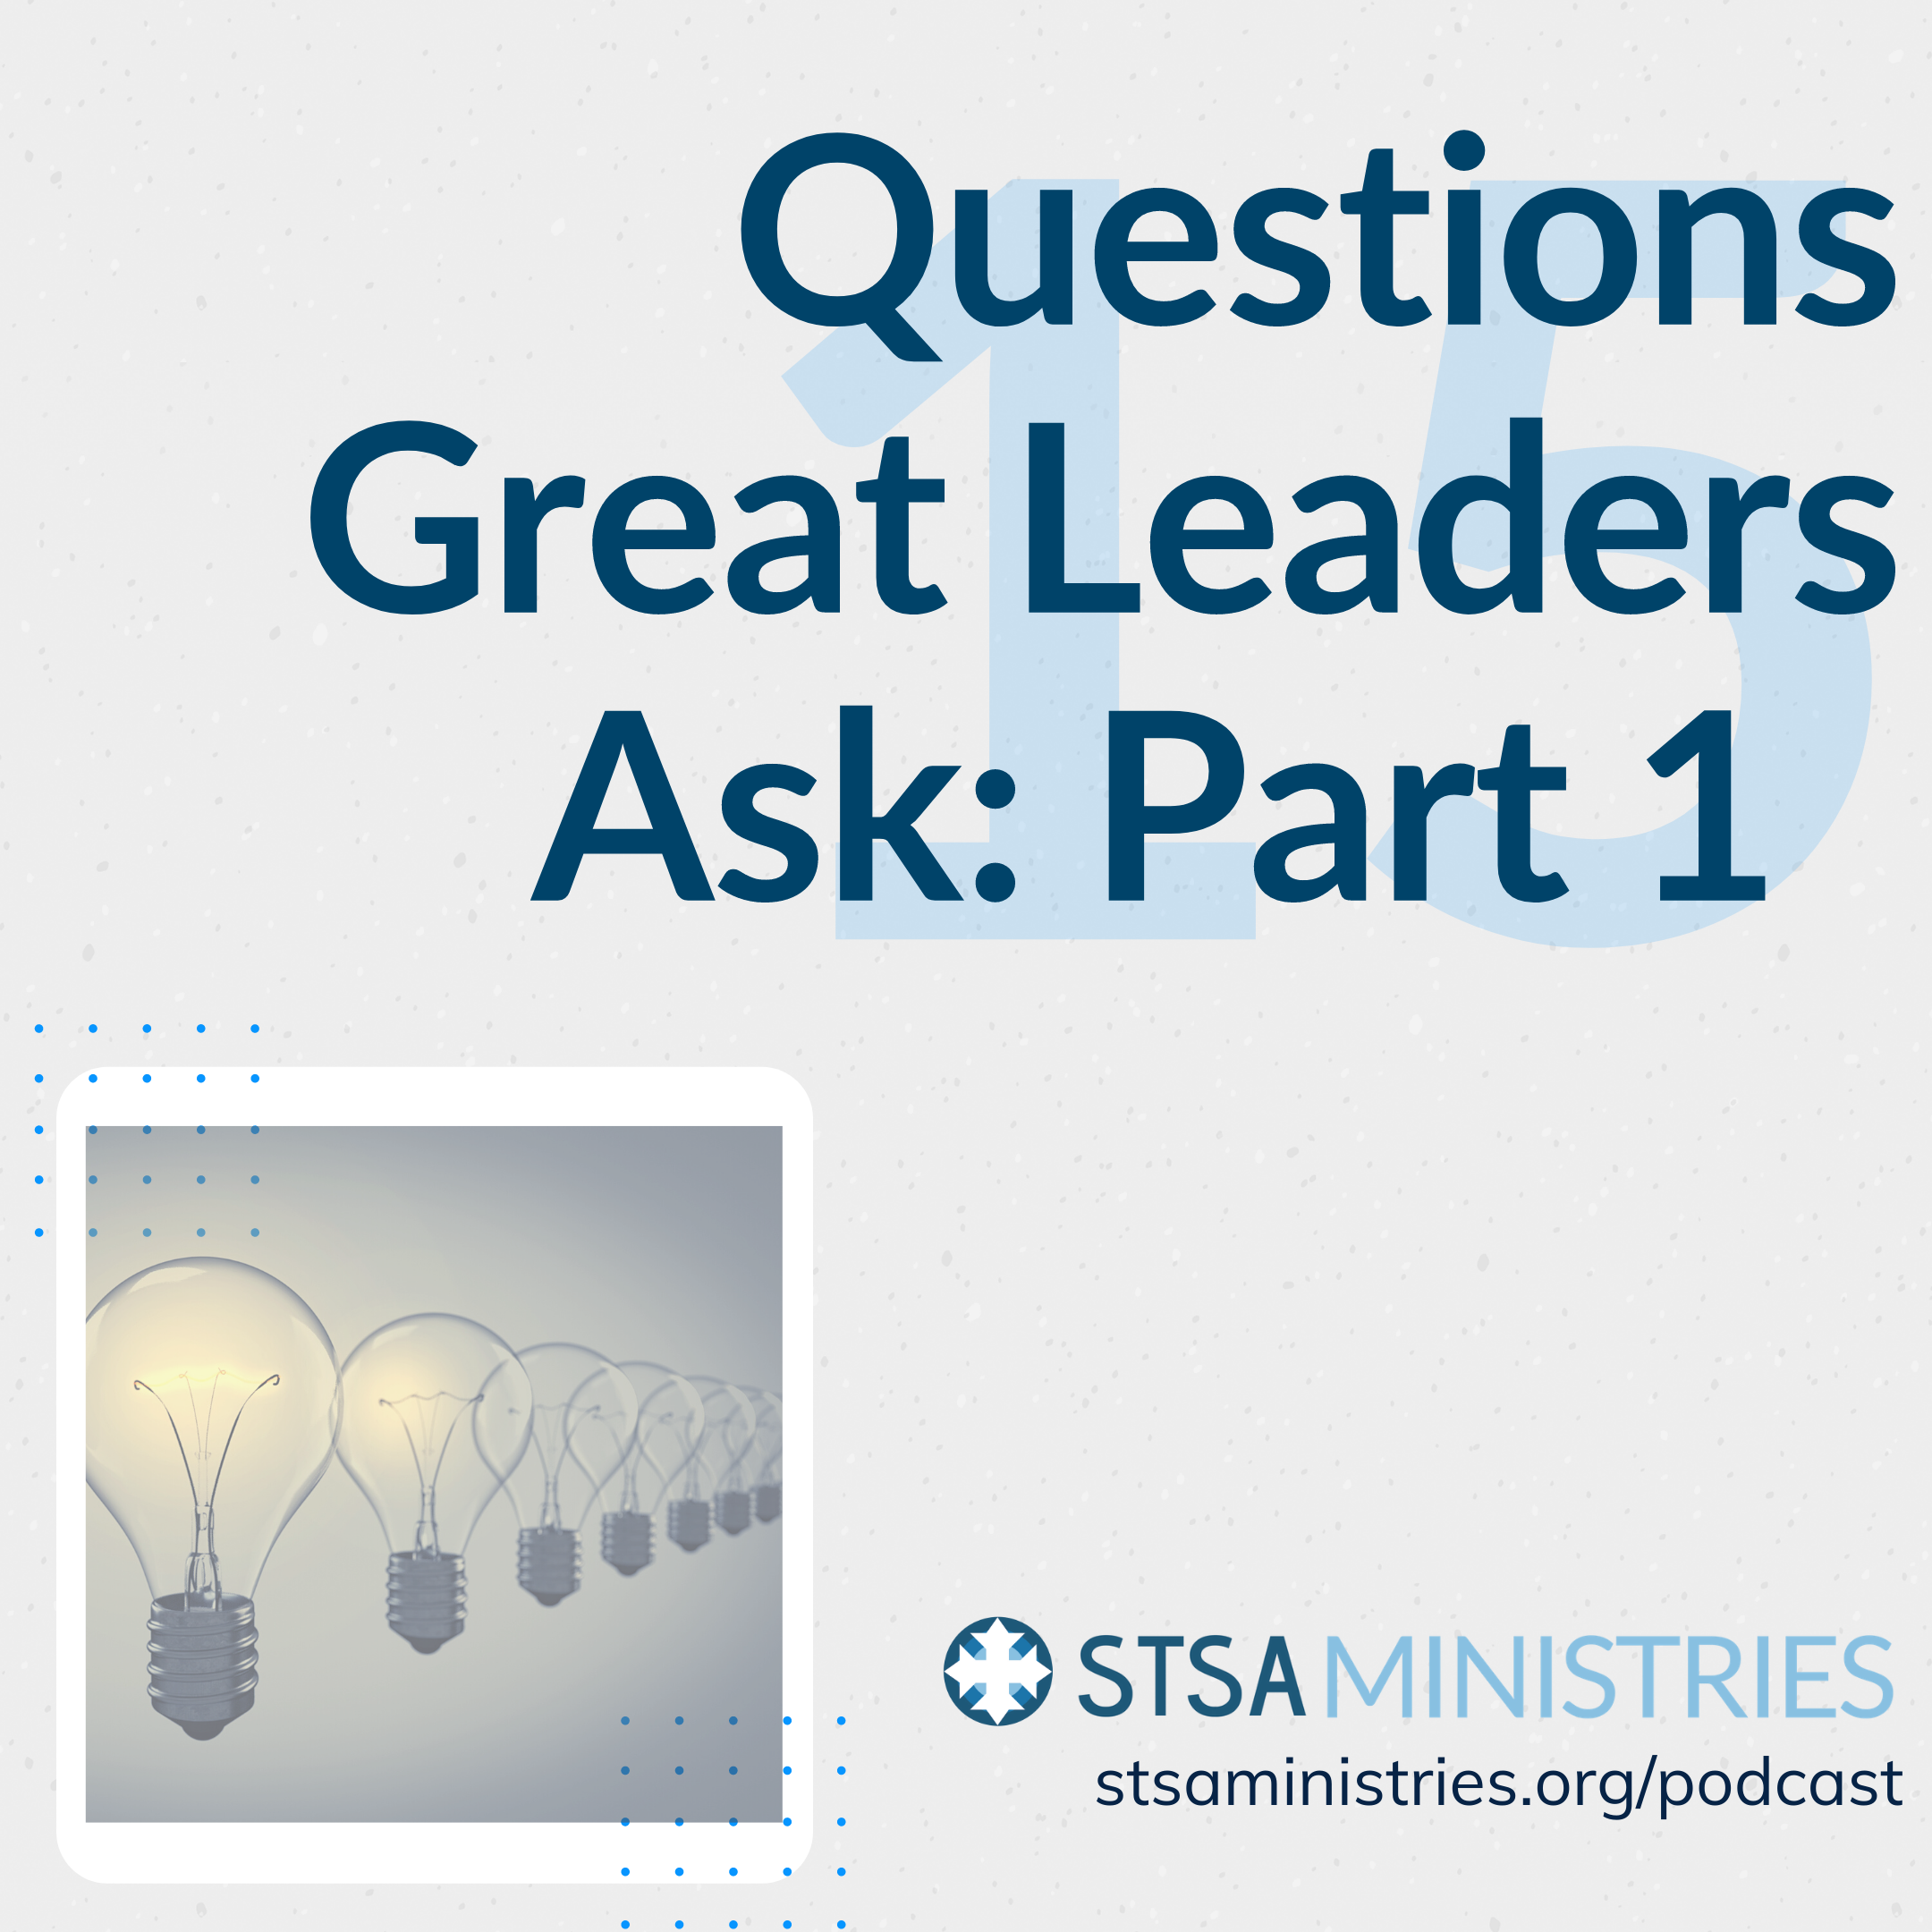 Questions Great Leaders Ask - Part 1